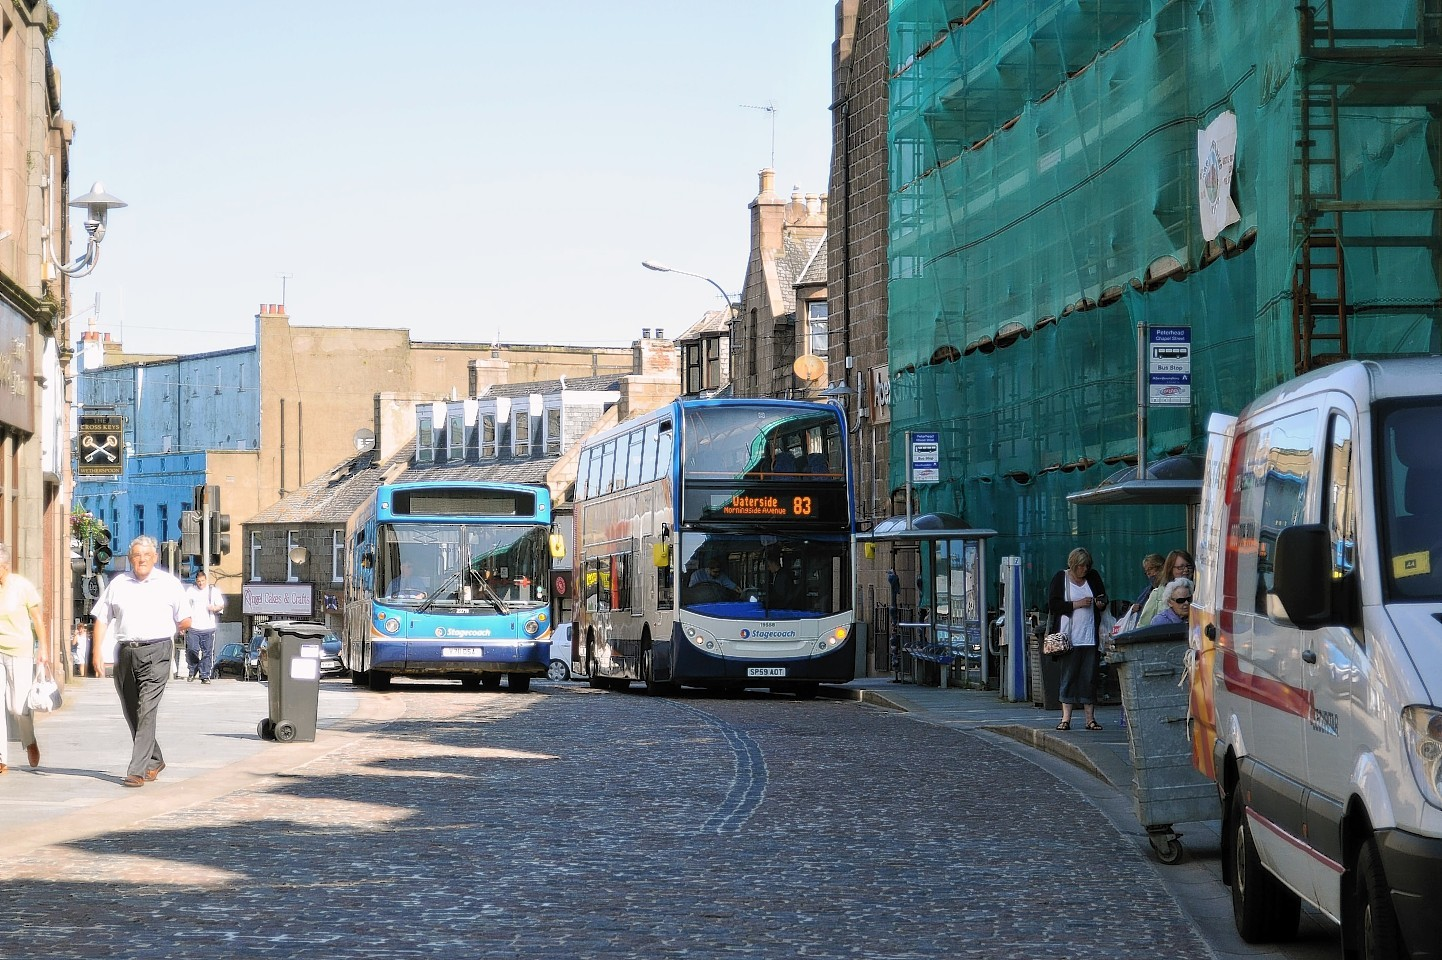 Chapel Street, which is set to be re-opened to traffic